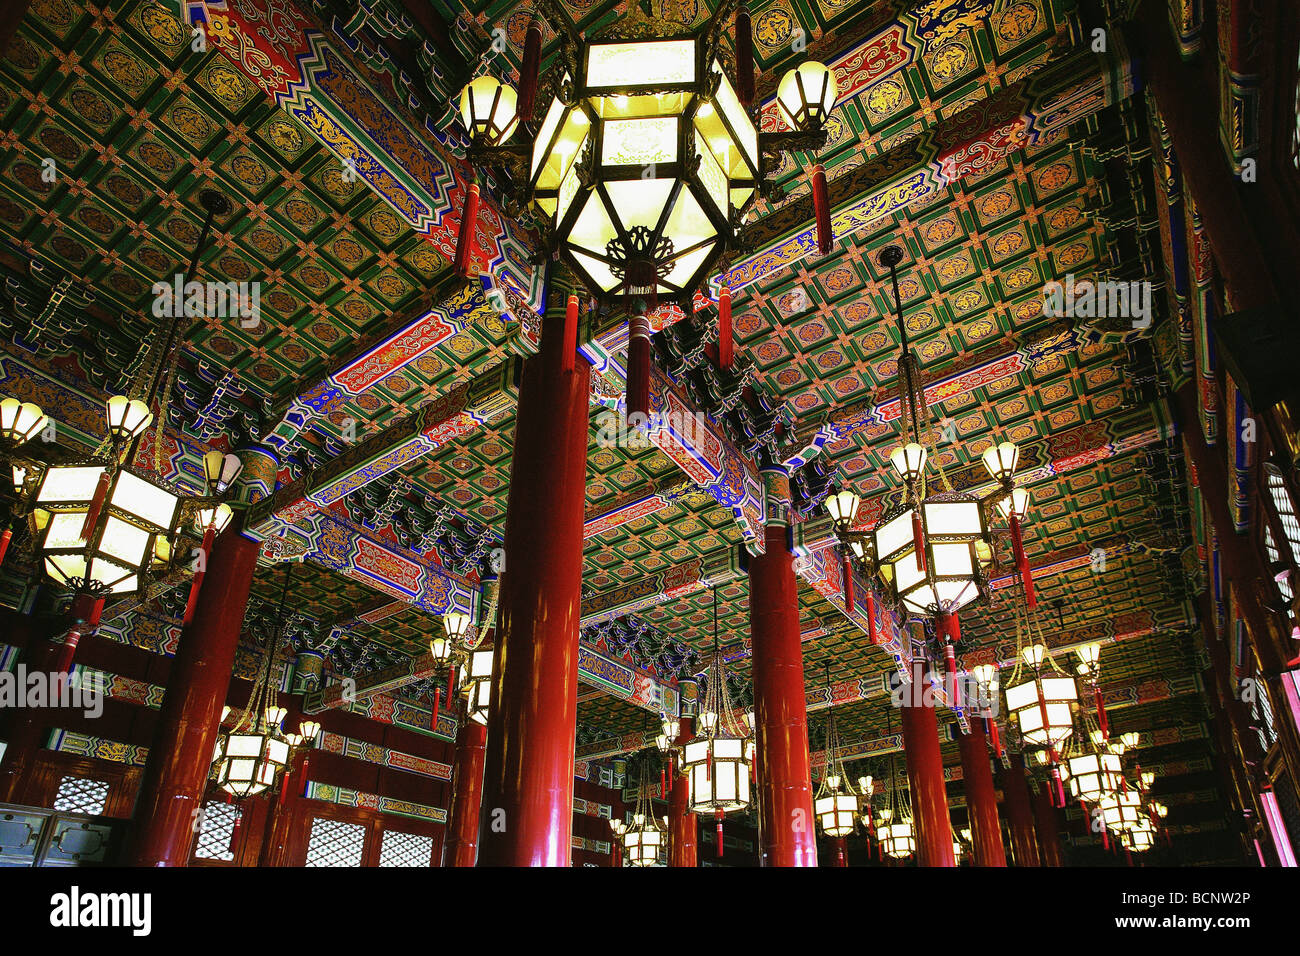 Interior of the Tian'anmen Rostrum in the Tian'anmen Square, Beijing, China - Stock Image